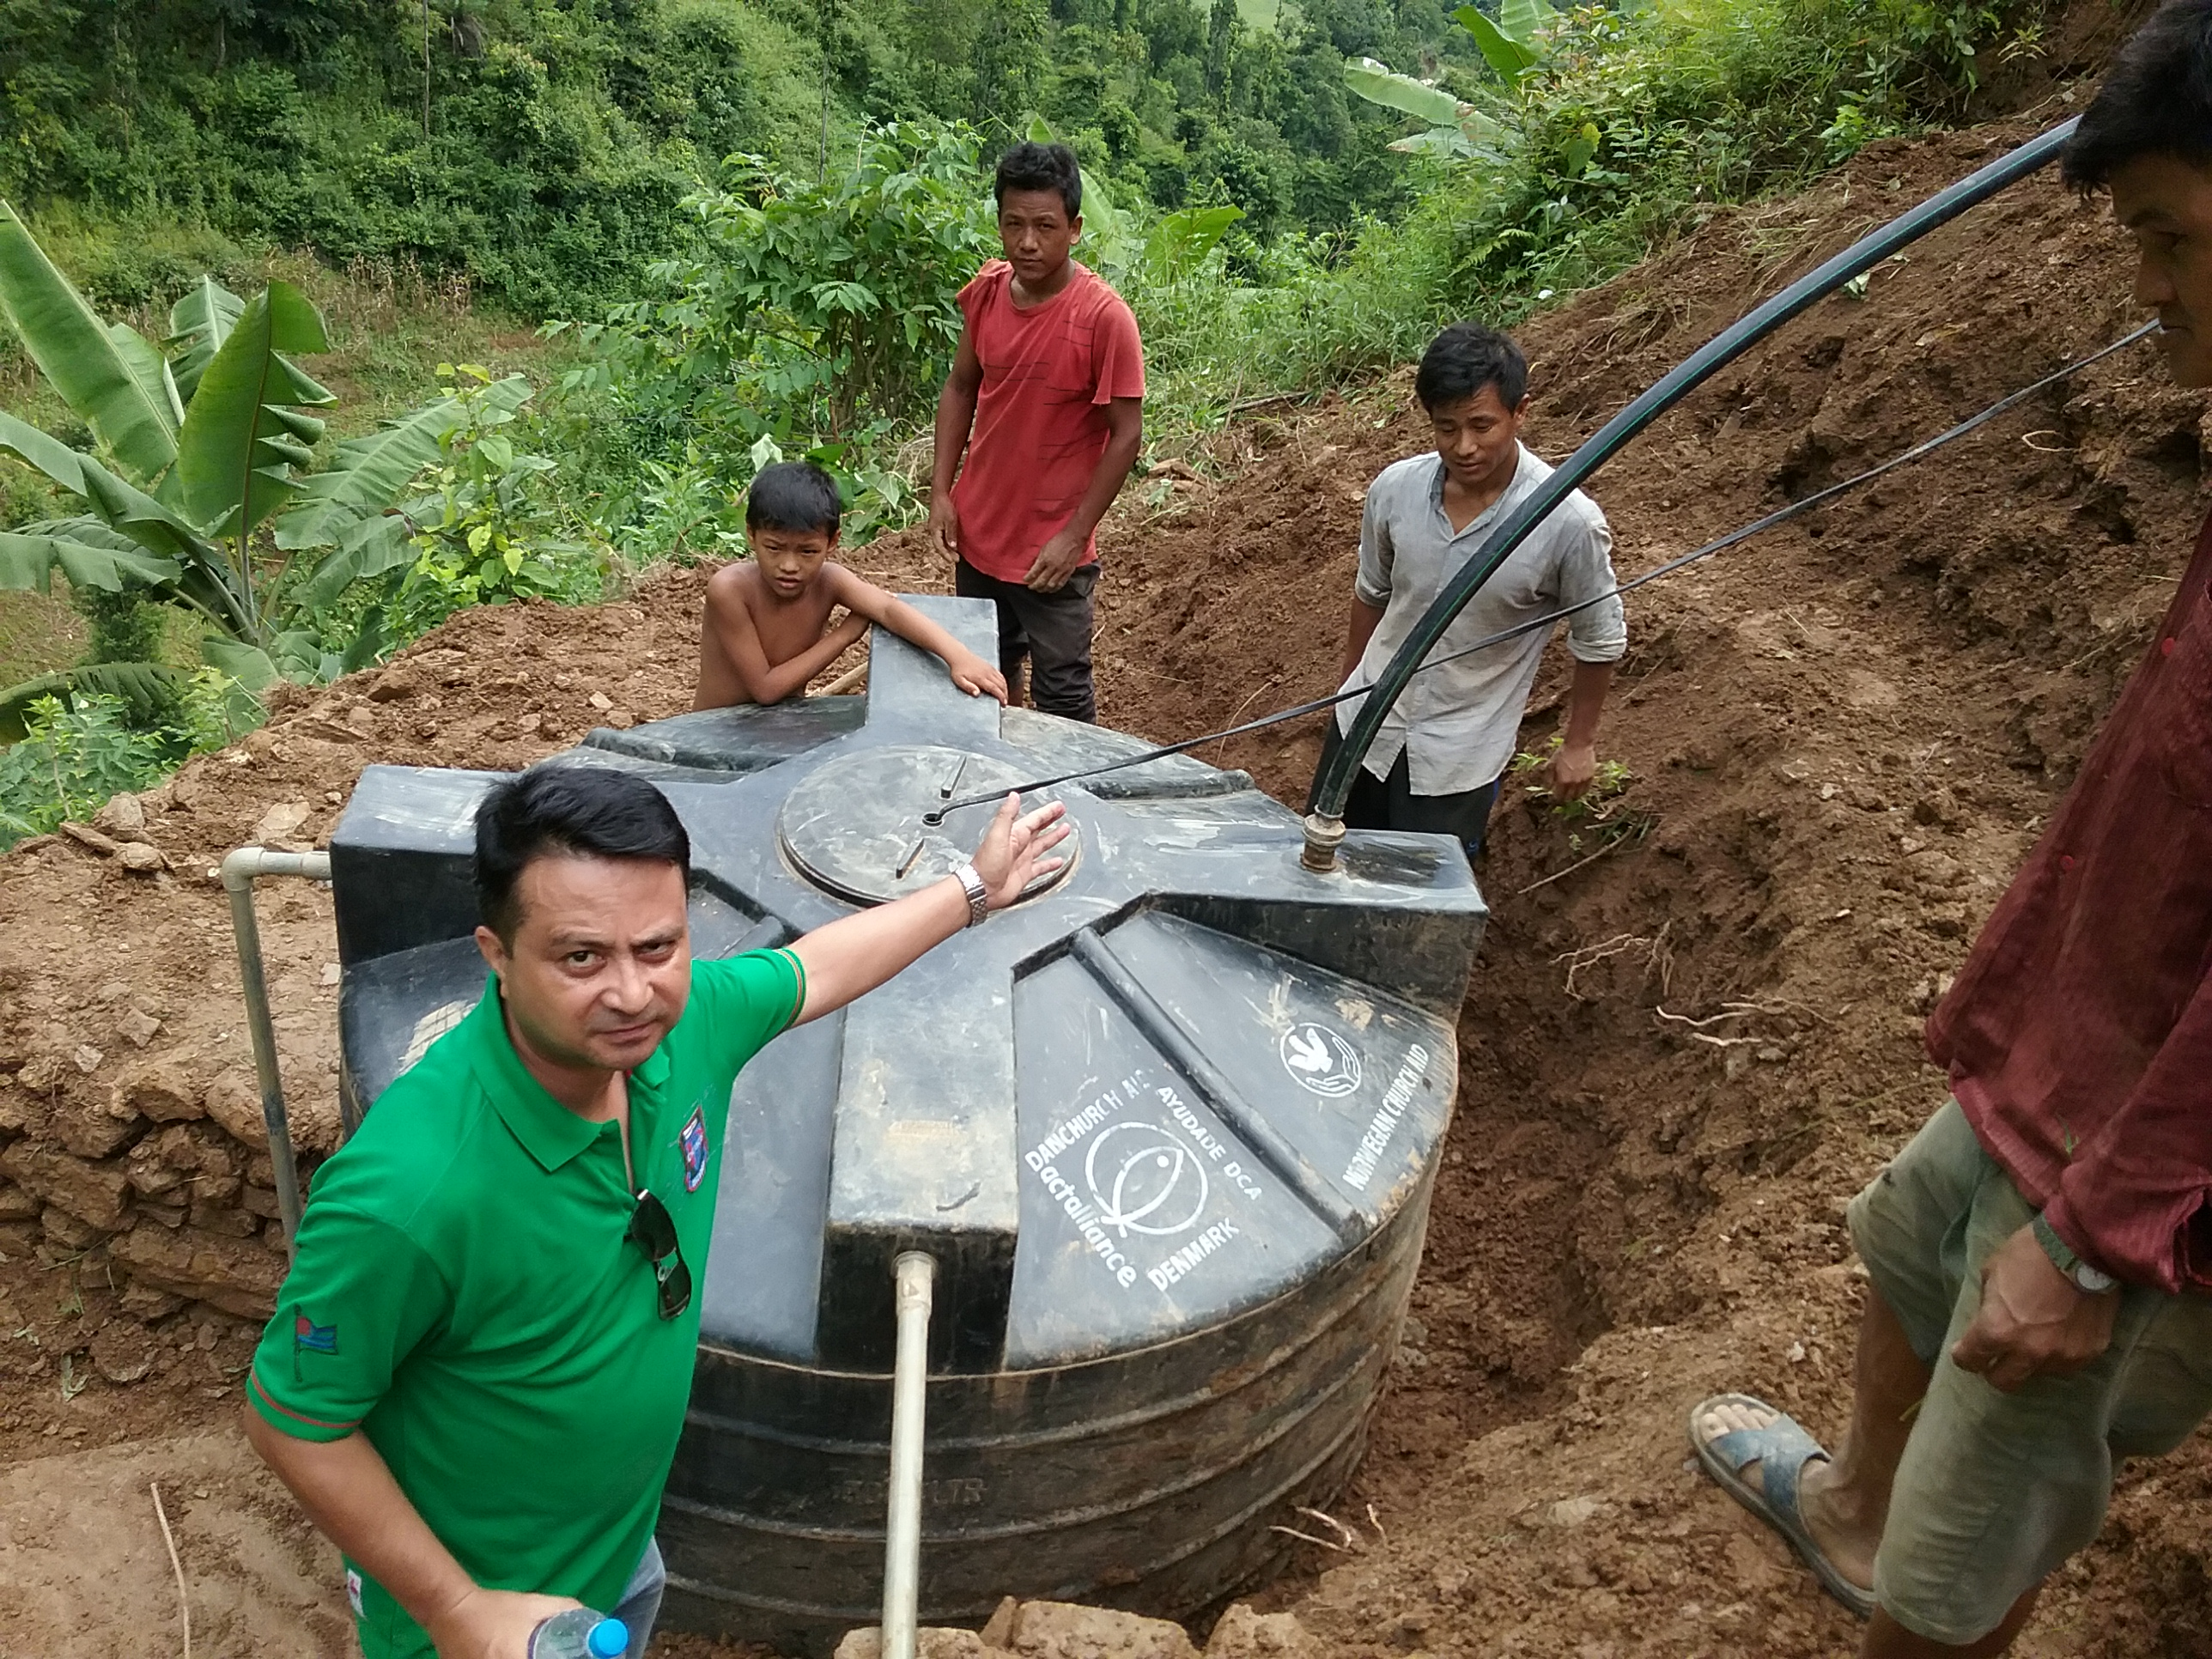 In Nepal's Dhading District, community members complete installation of their new water catchment tank, to collect water from the spring below their village.